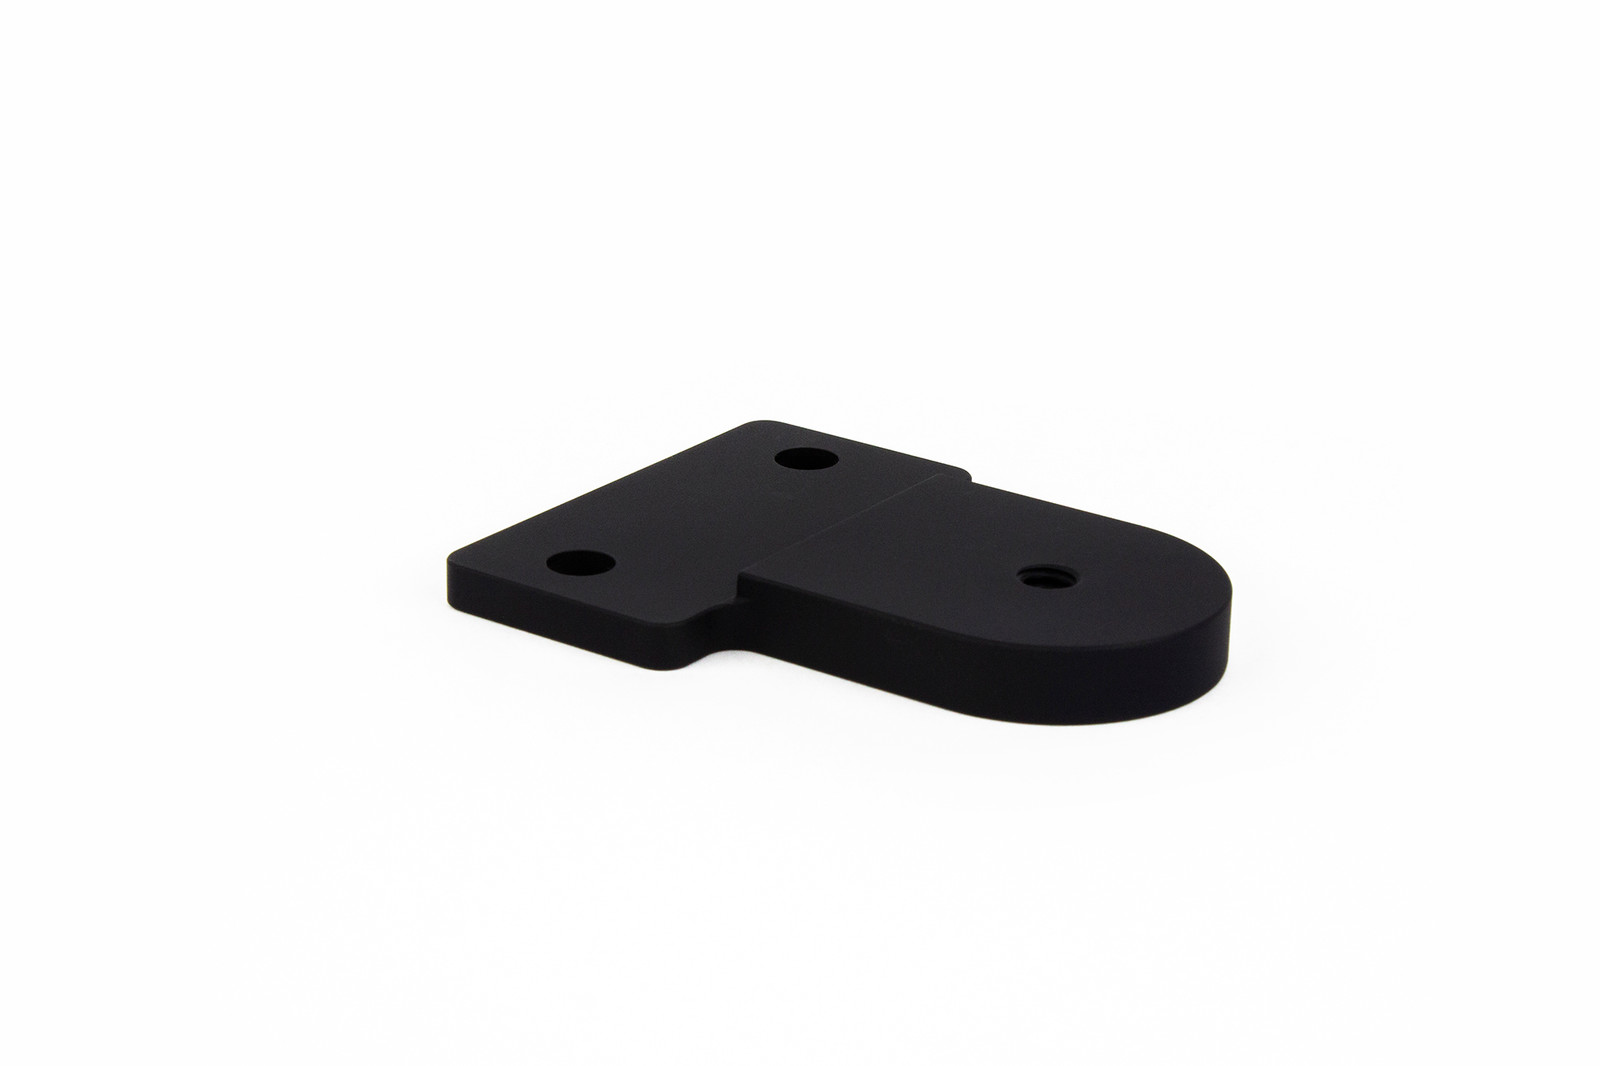 Picture of Abel Company's Small Offset Mount (SOM) adapter with a white background. Side view of the adapter.